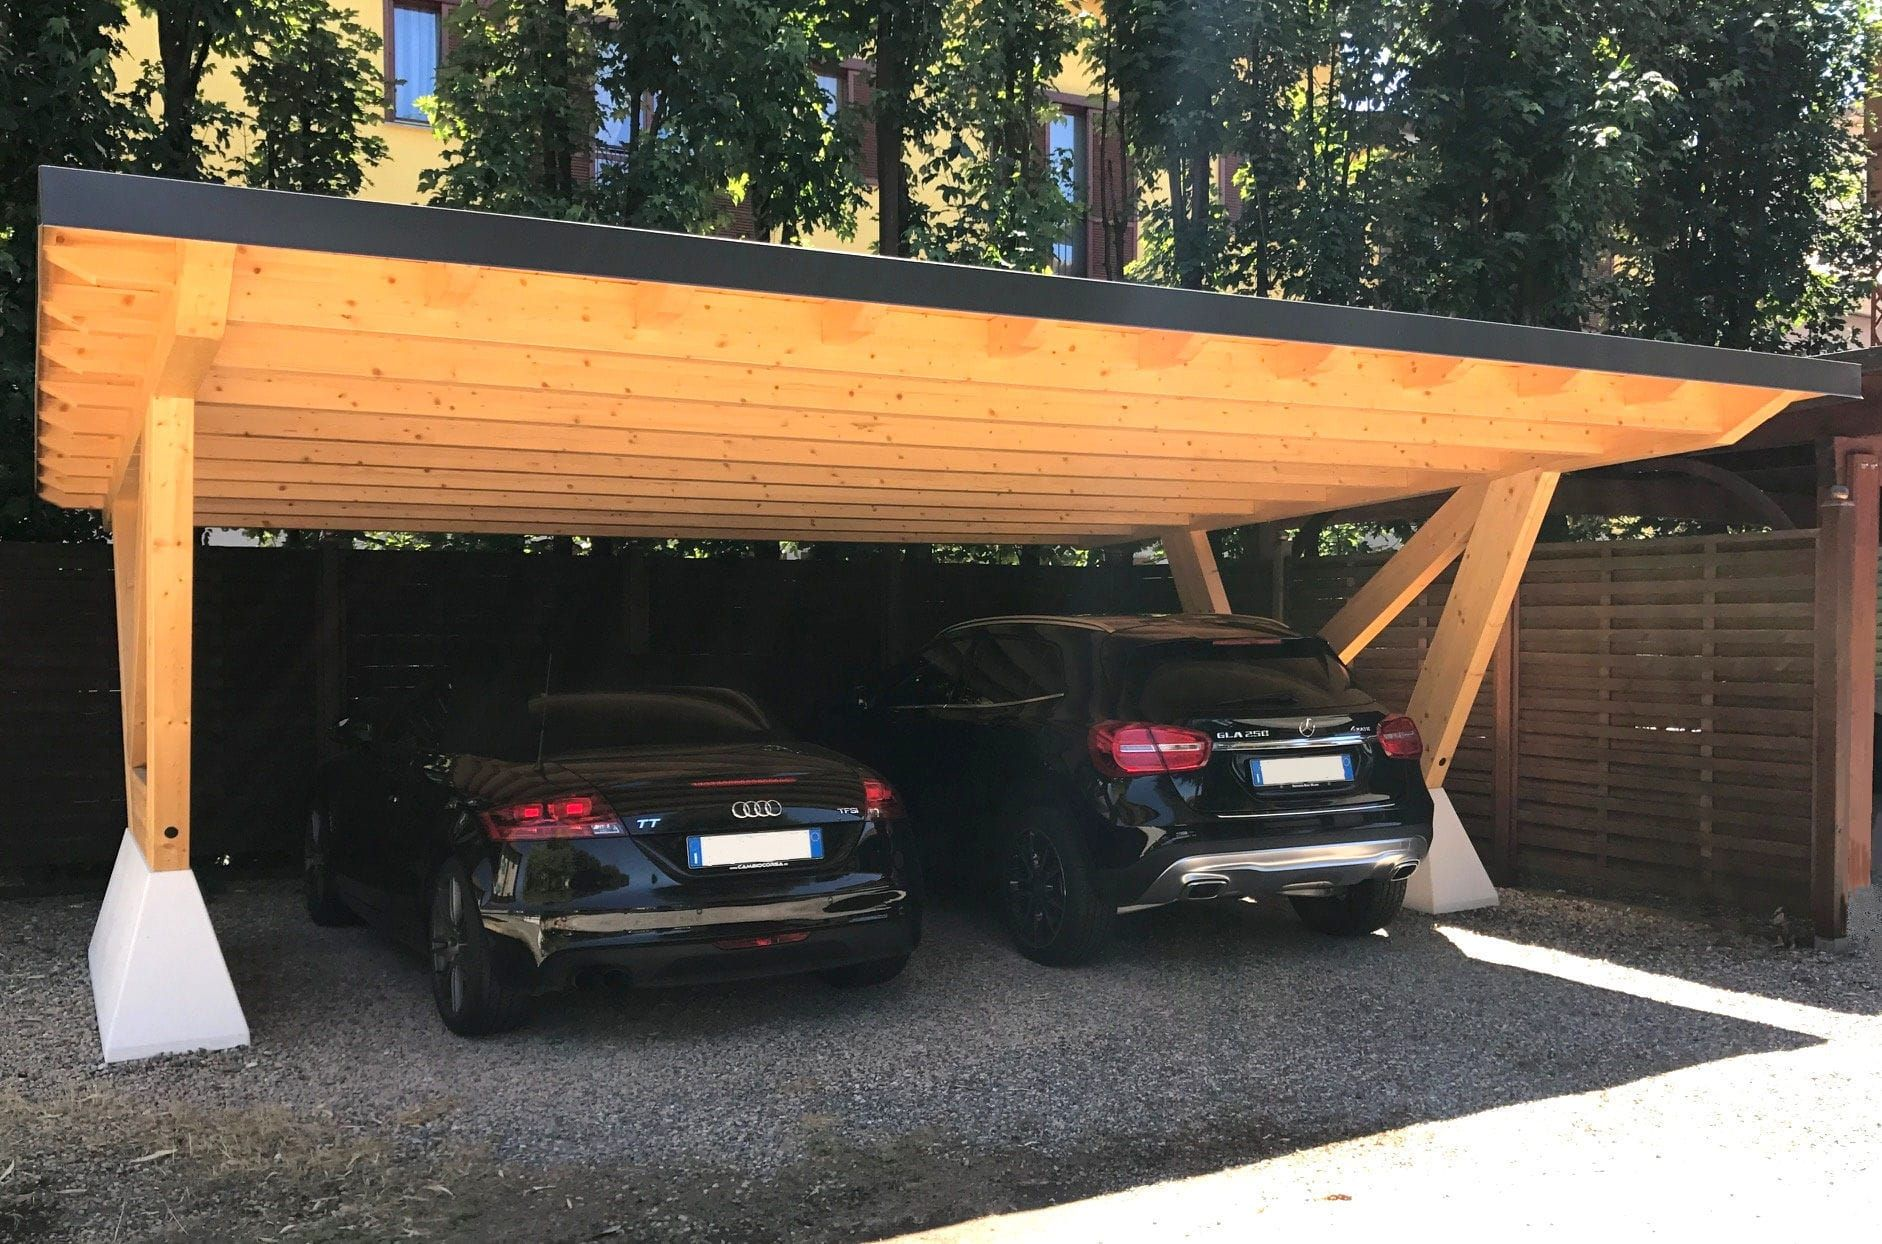 Wooden Carport Arco Proverbio Outdoor Design Wooden Carports Carport Designs Cantilever Carport